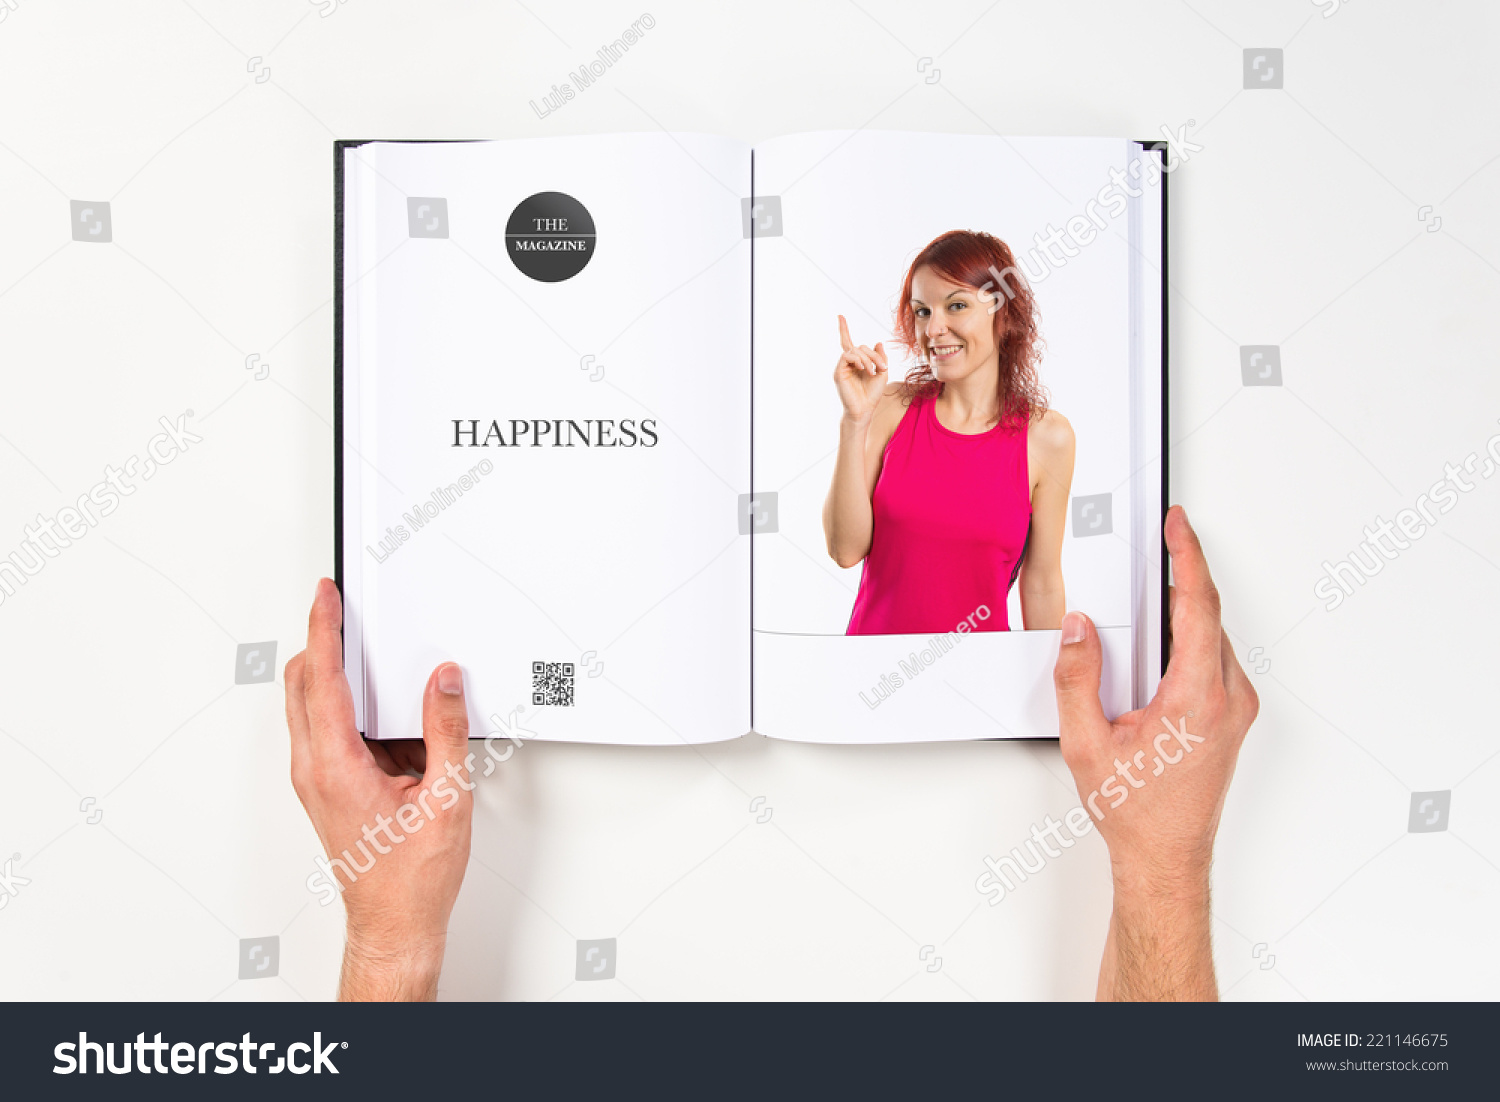 Young girl having an printed on book #221146675